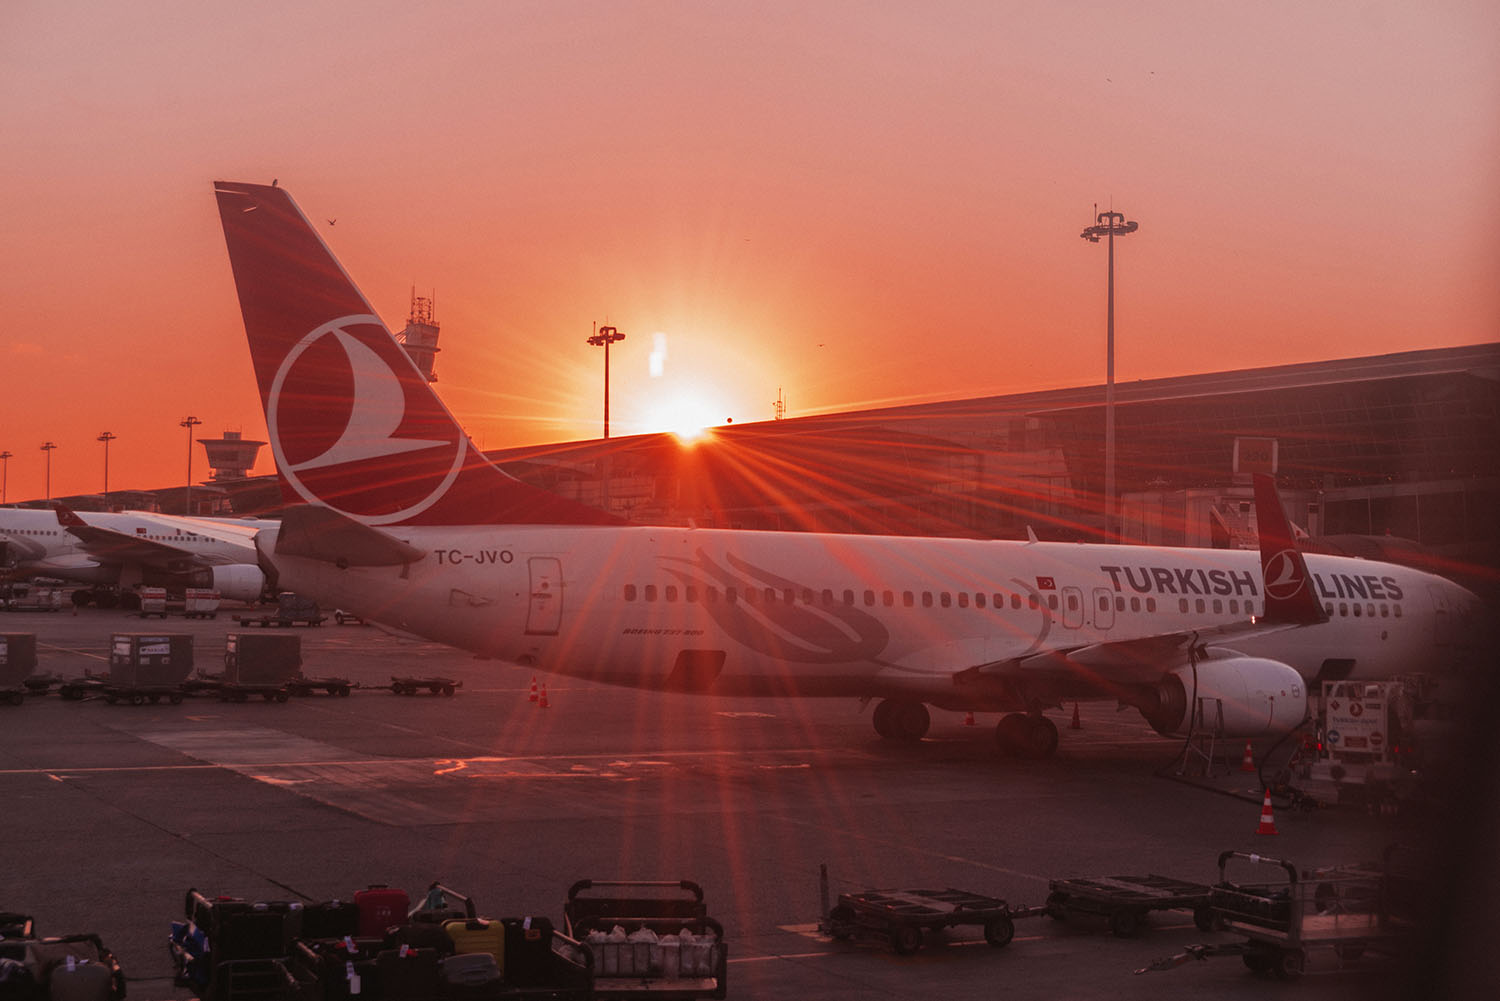 Turkish Airlines in Sunset at Instabul airport